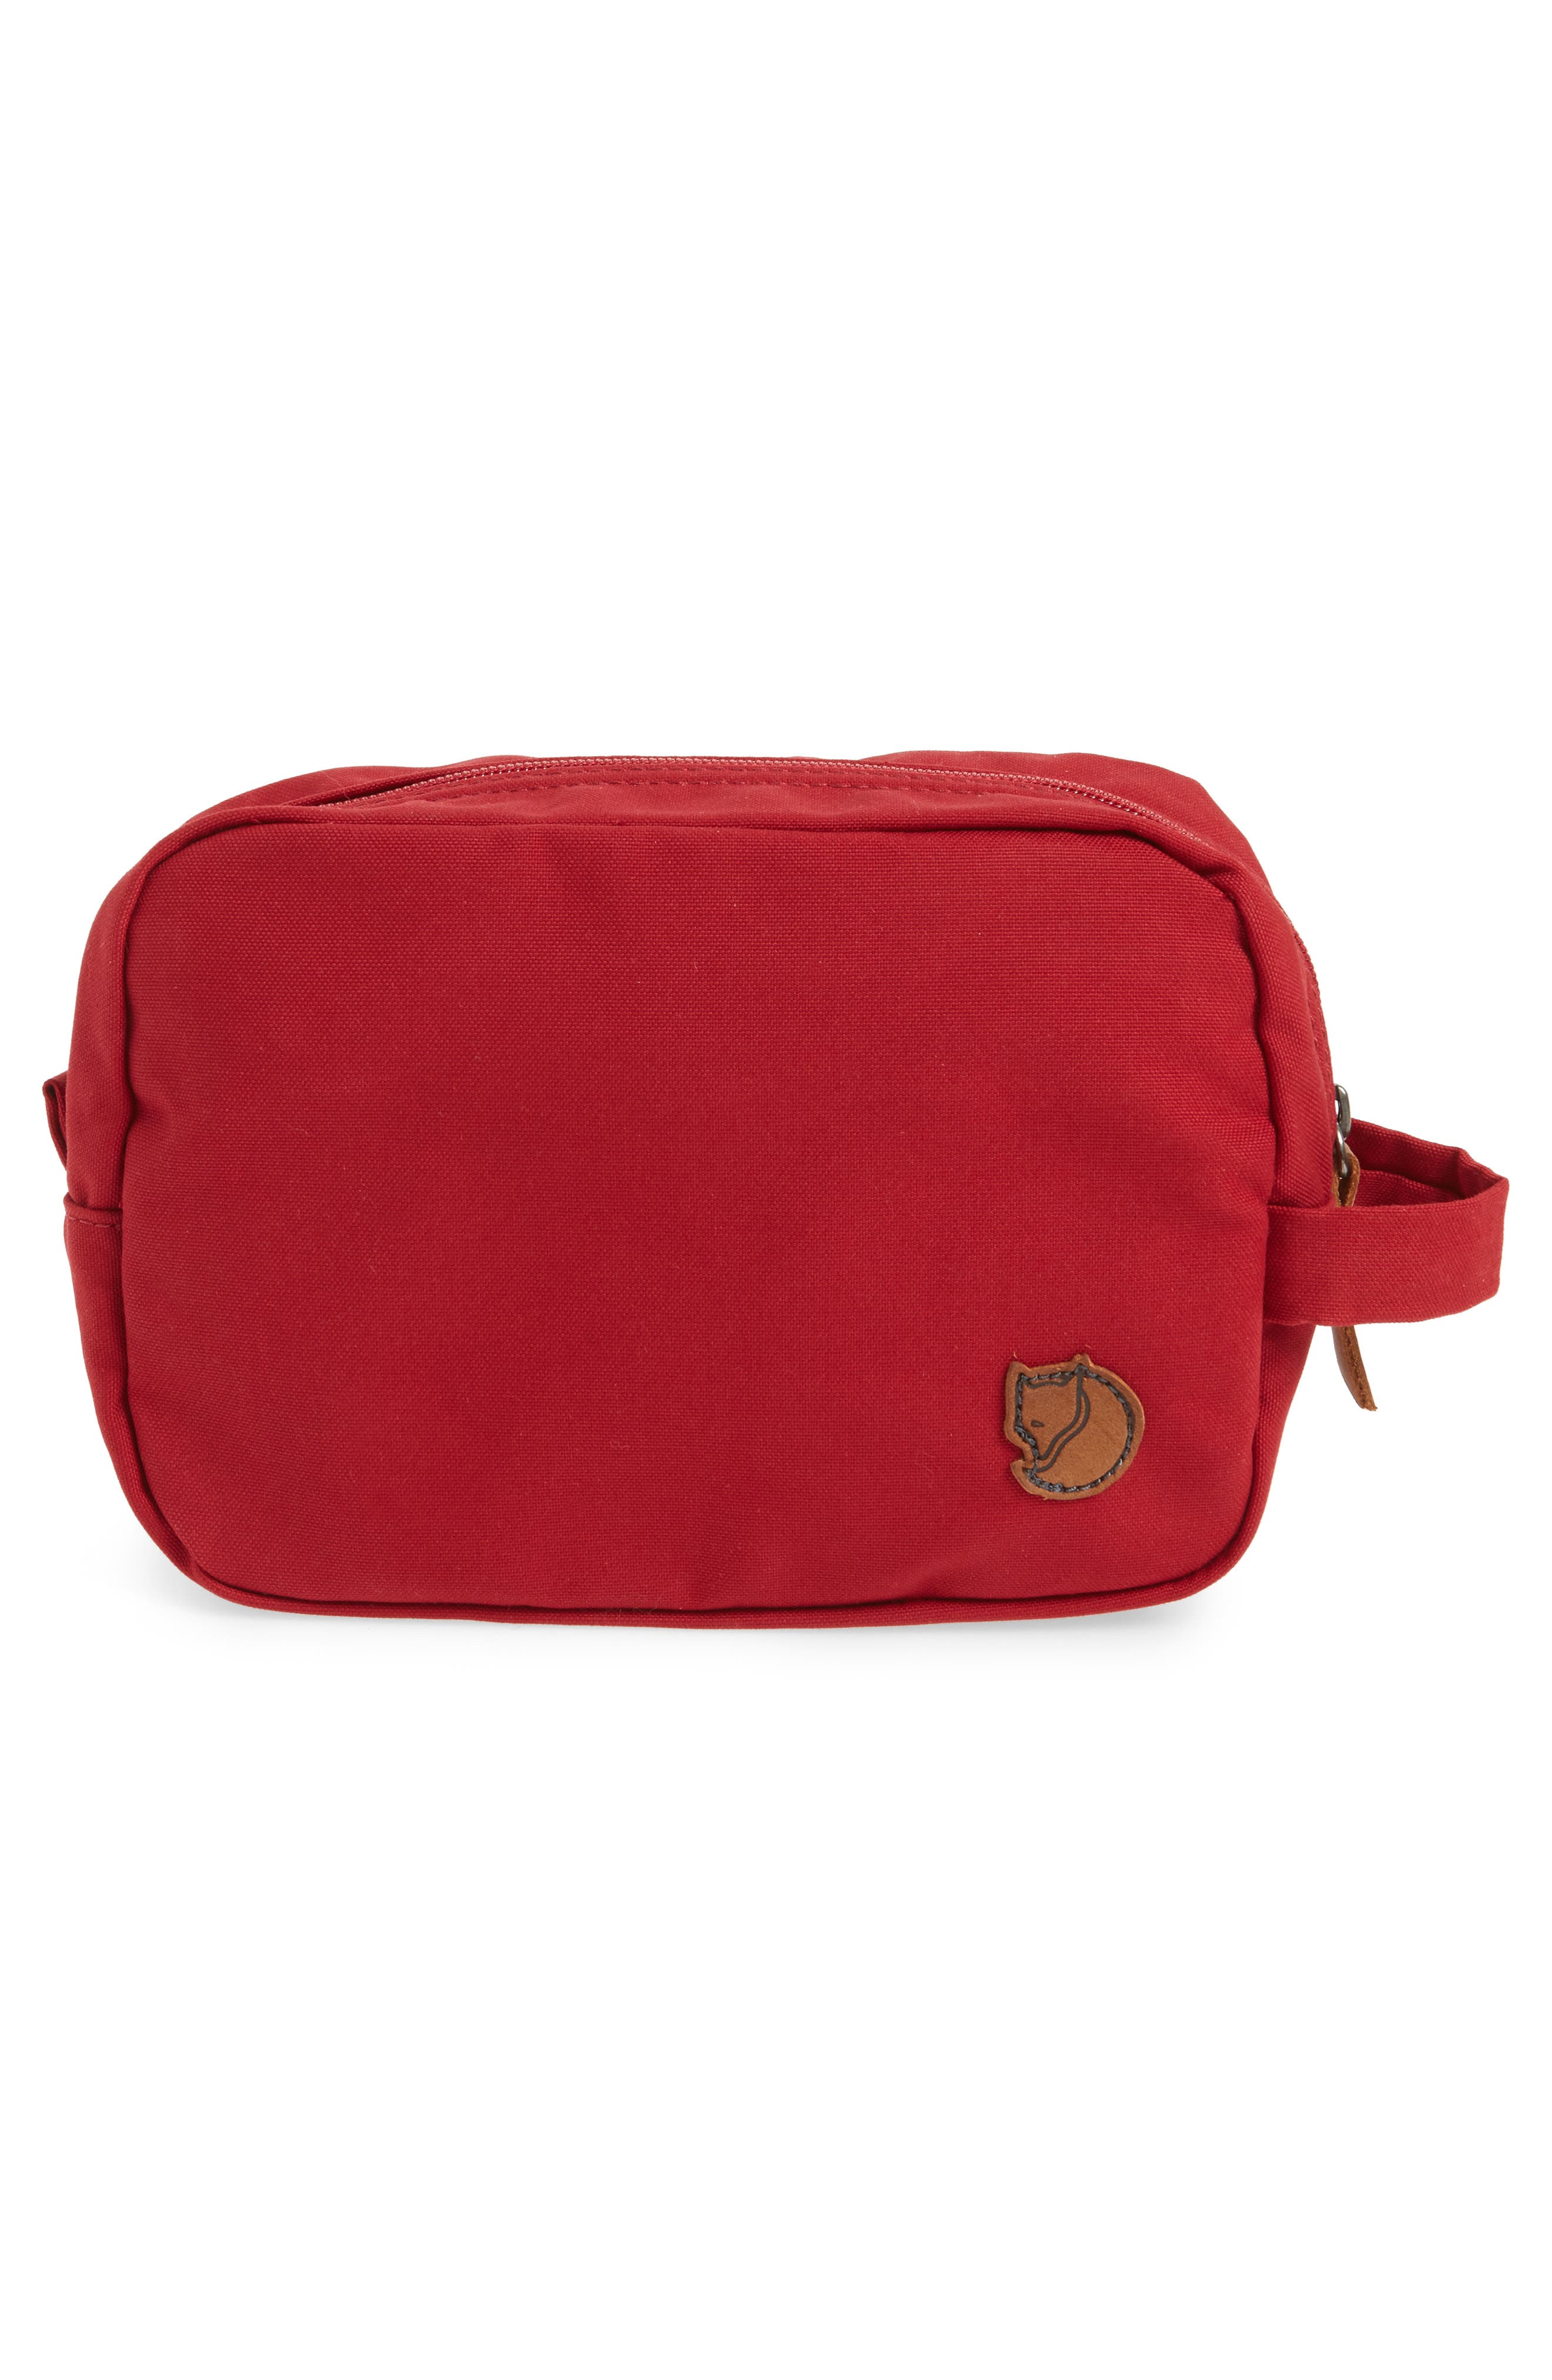 Water Resistant Gear Bag Pouch,                             Main thumbnail 1, color,                             Redwood